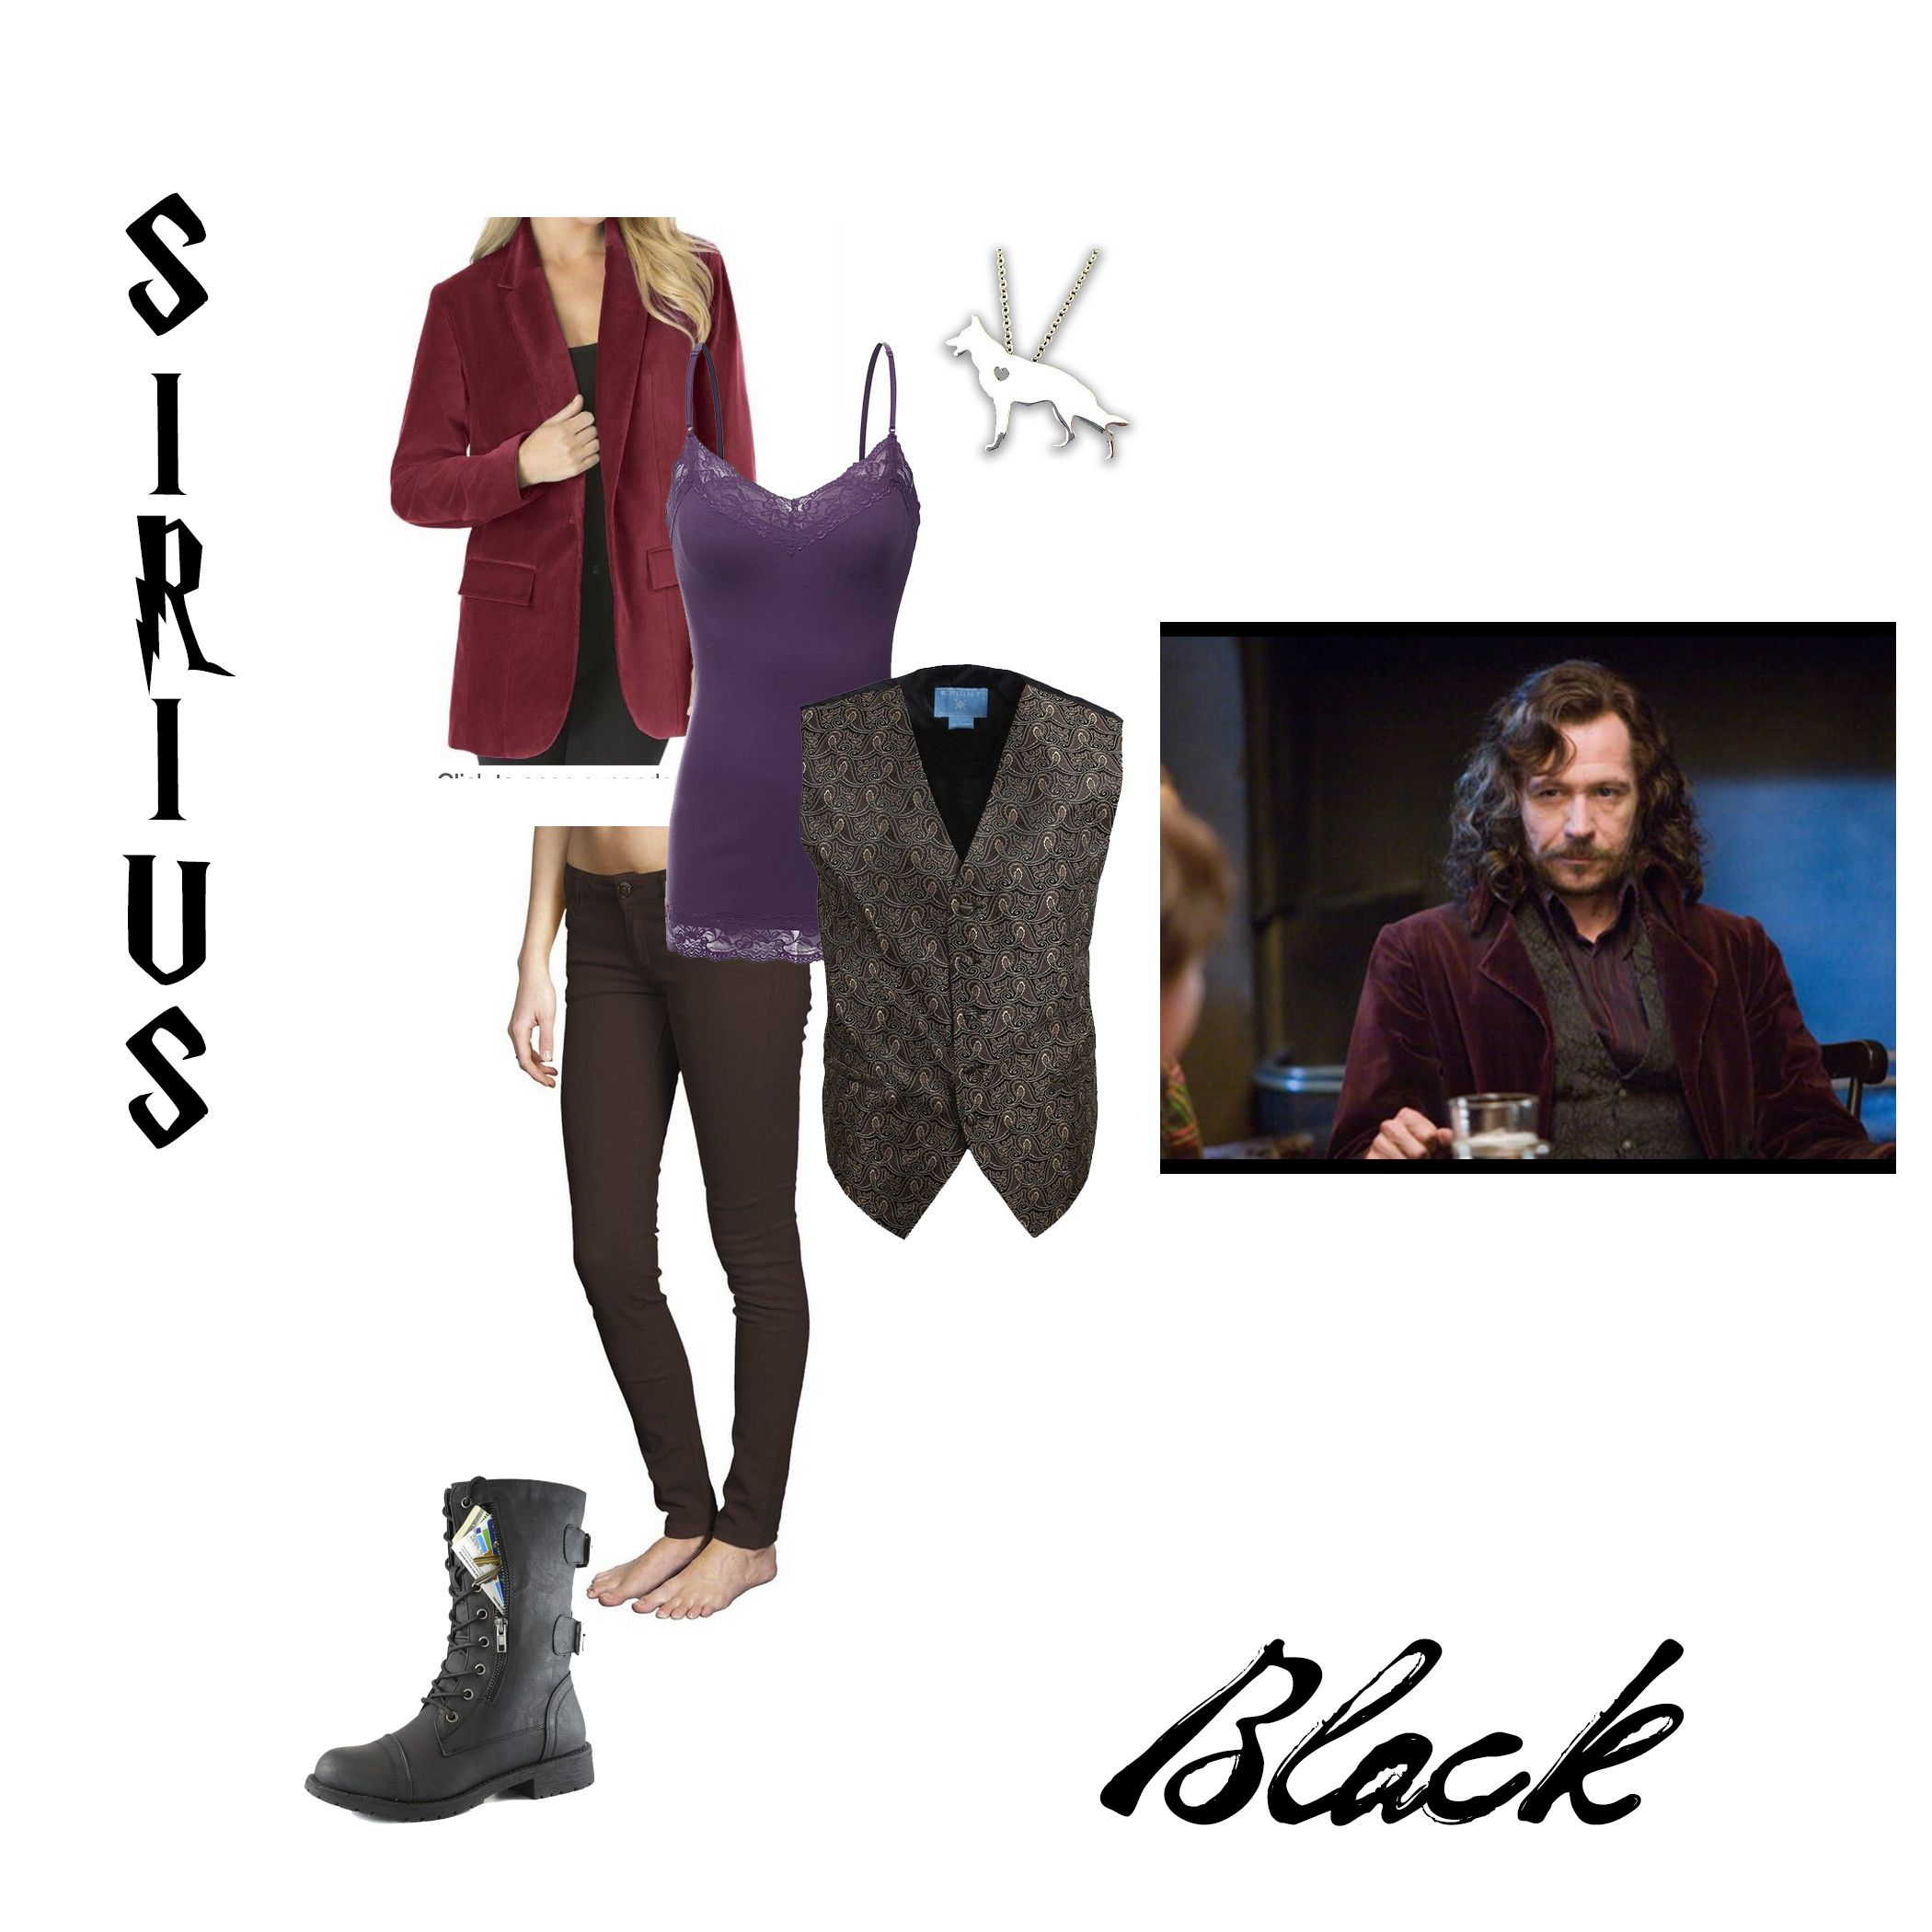 Sirius Black Cosplay/Costume for an adult woman for #Conjuration Under $100.